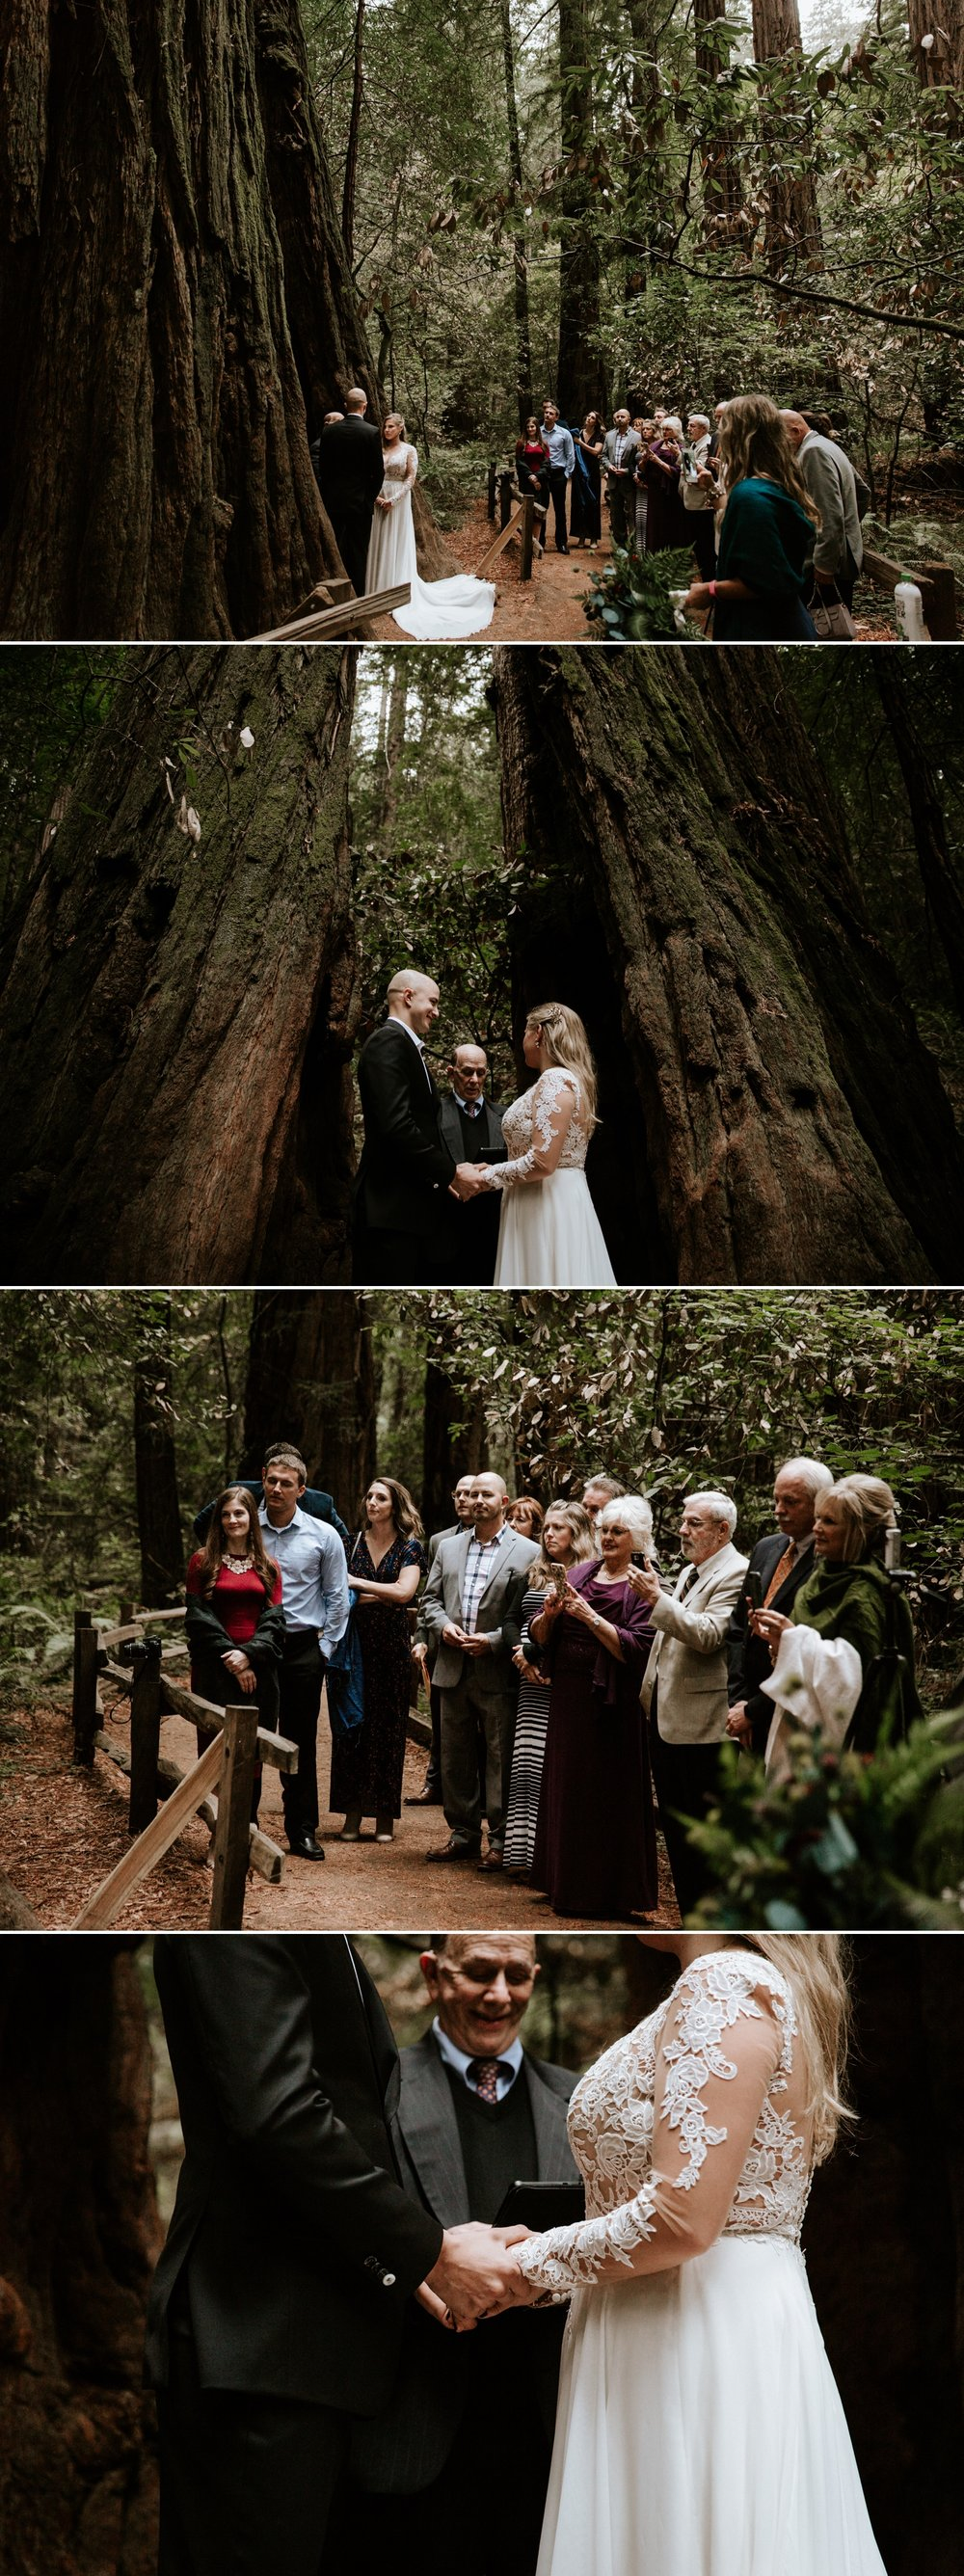 hannah-nick-intimate-muir-woods-wedding-19.jpg